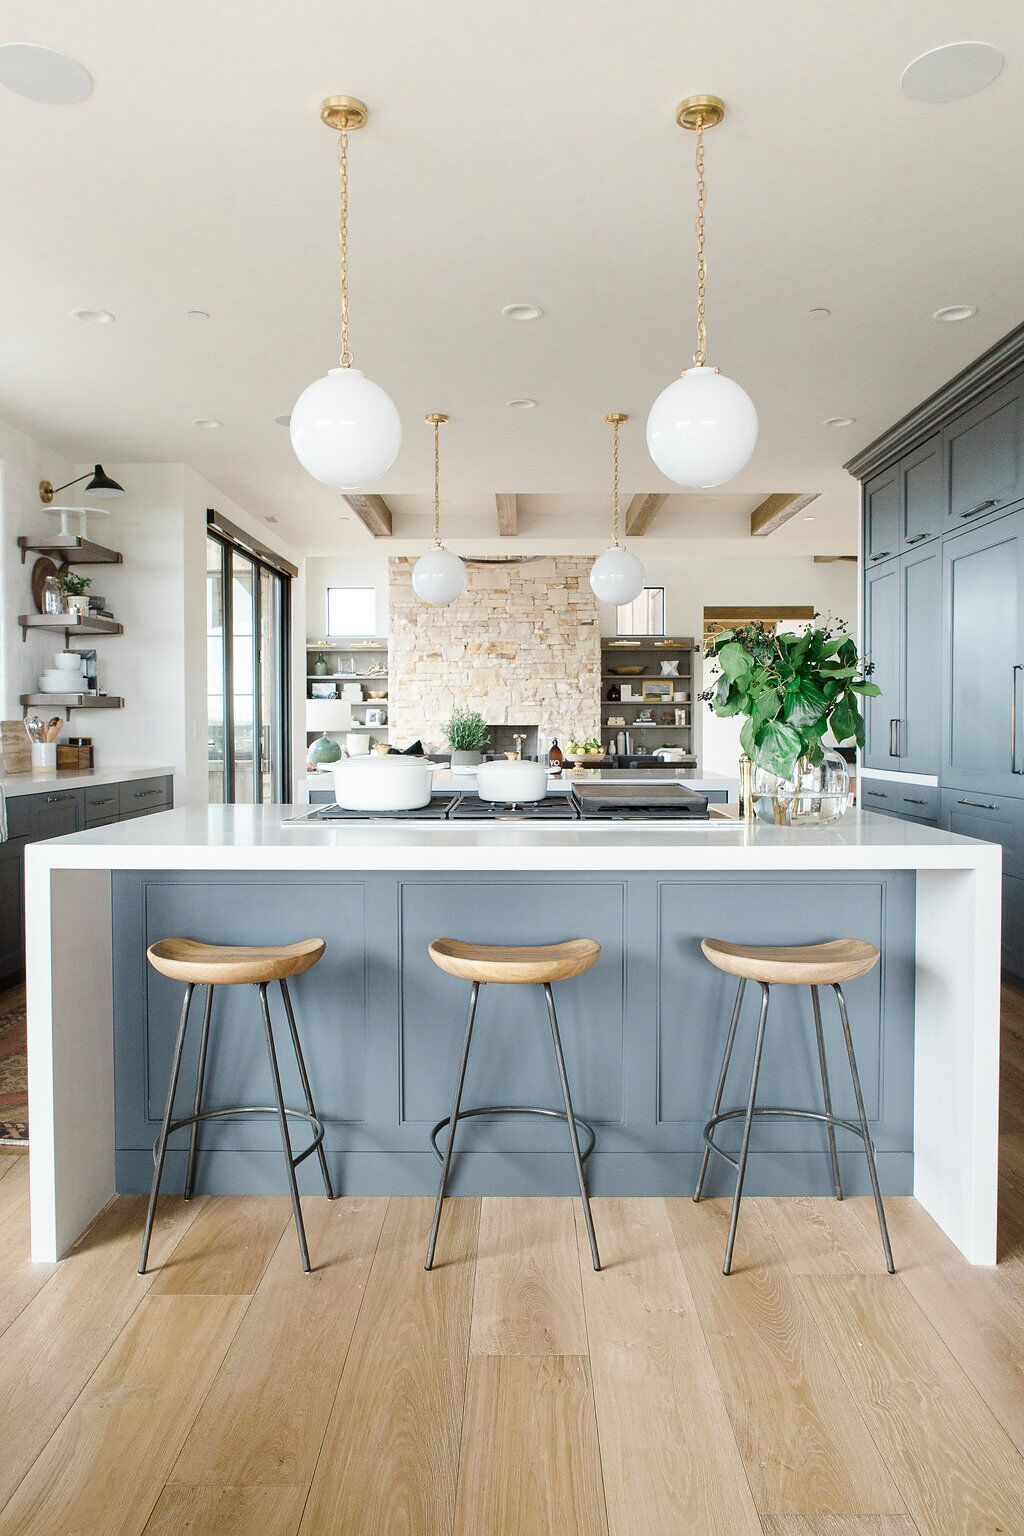 Promontory Project | Pinterest | Open kitchens, Kitchens and Modern ...